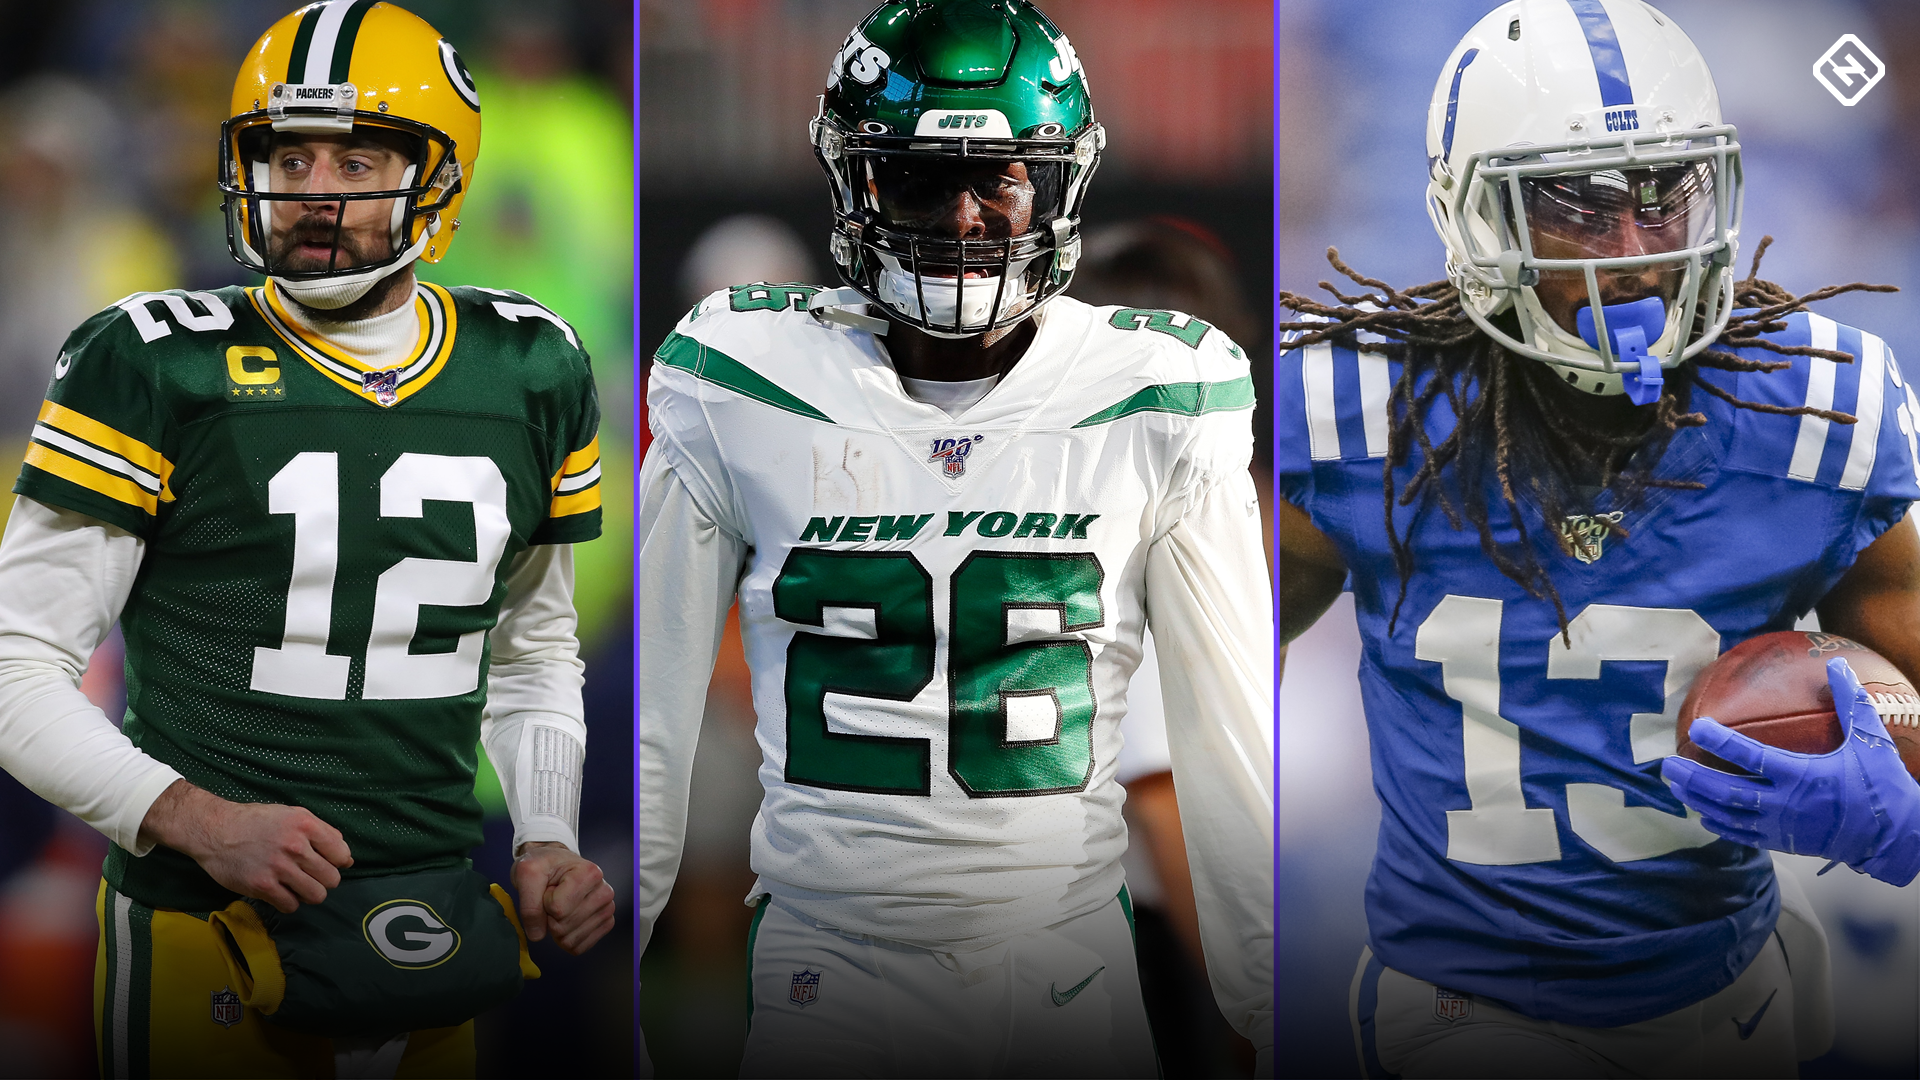 2020 Fantasy Football Busts: 'Do Not Draft' list of top overrated players by ADP 1